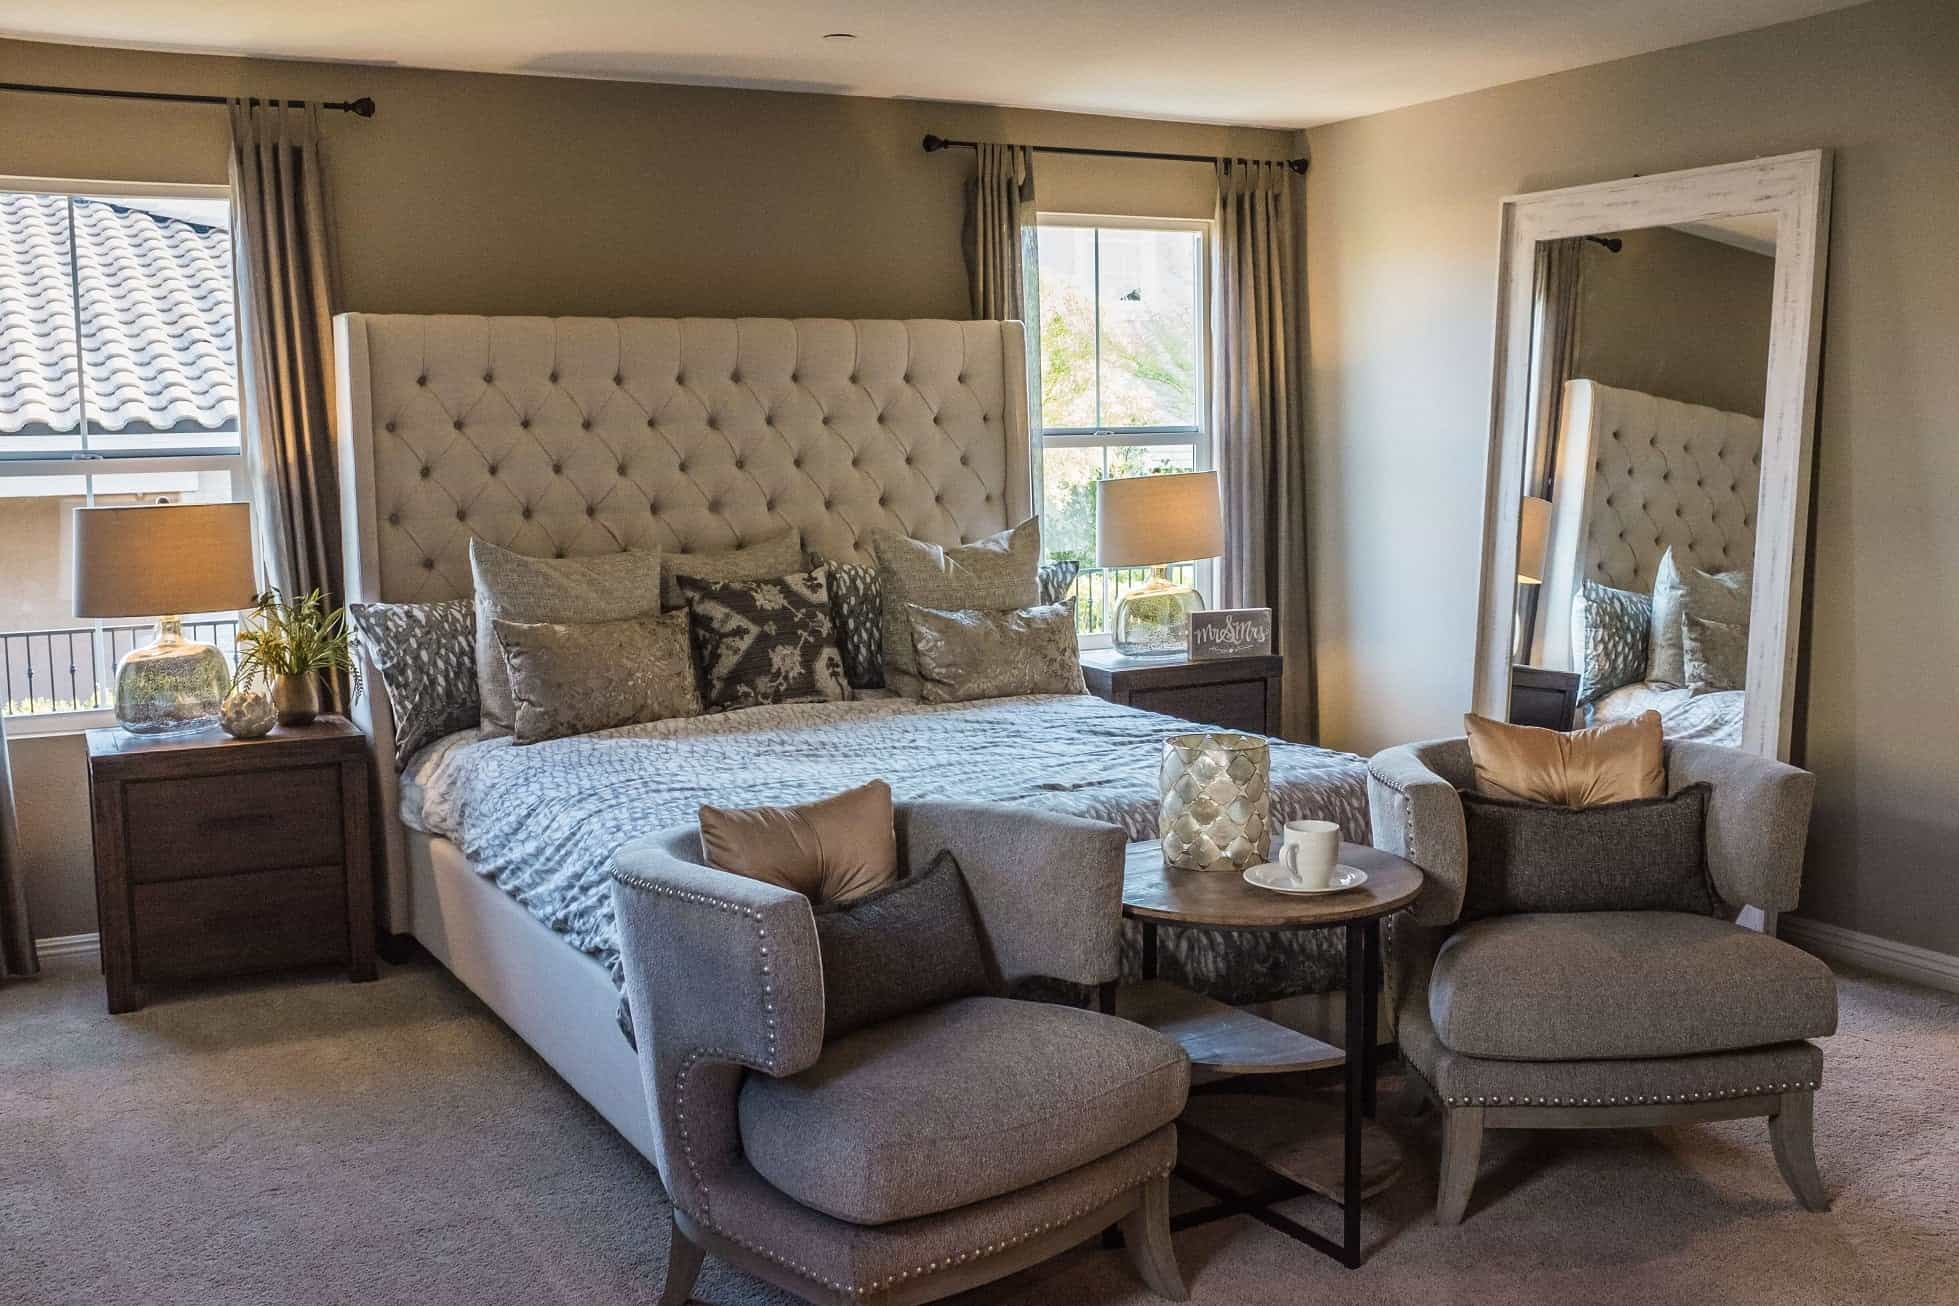 Tips for the Top Hotels in Kent with Spa & Boutique Finishes